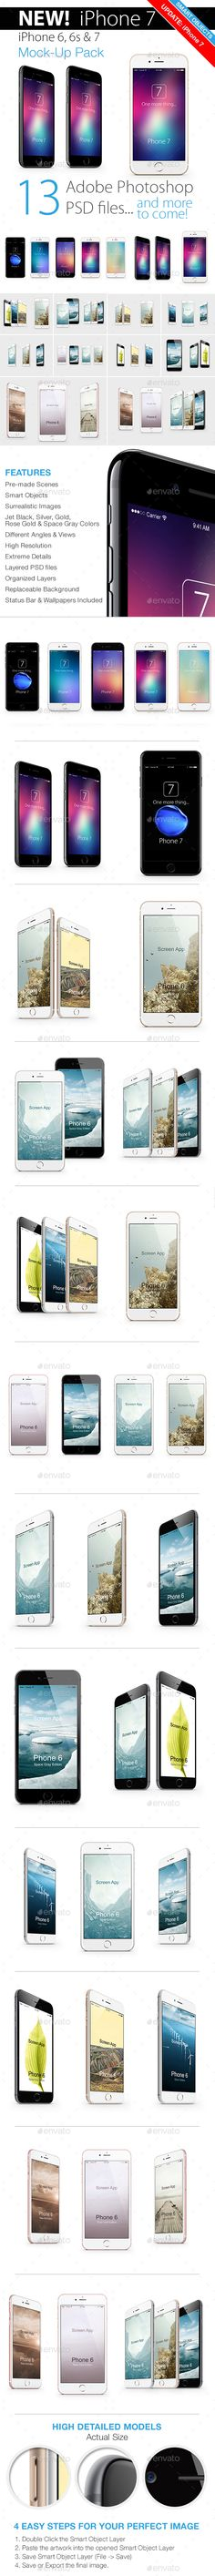 #iPhone 7 & 6s #Mockup Pack - Mobile #Displays Download here: https://graphicriver.net/item/iphone-7-6s-mockup-pack/8947116?ref=alena994